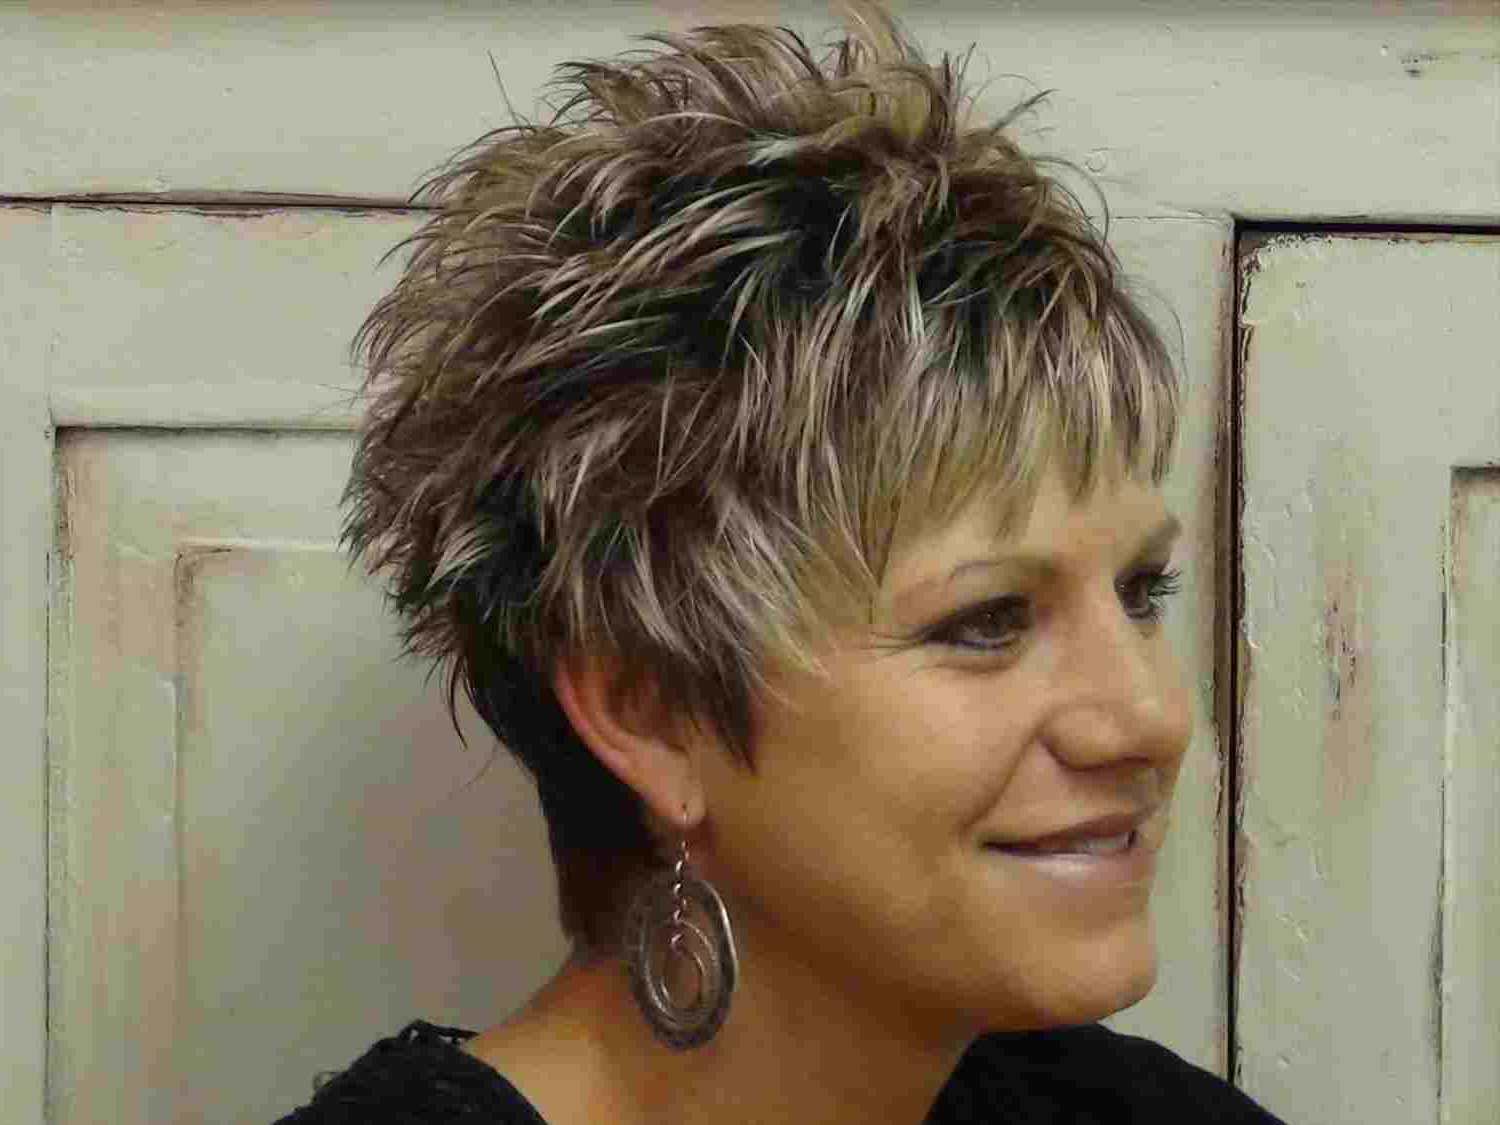 Short Hairstyles For Fat Women Over 40 | Nawabfusiongrill Regarding Short Hairstyles Fine Hair Over  (View 24 of 25)